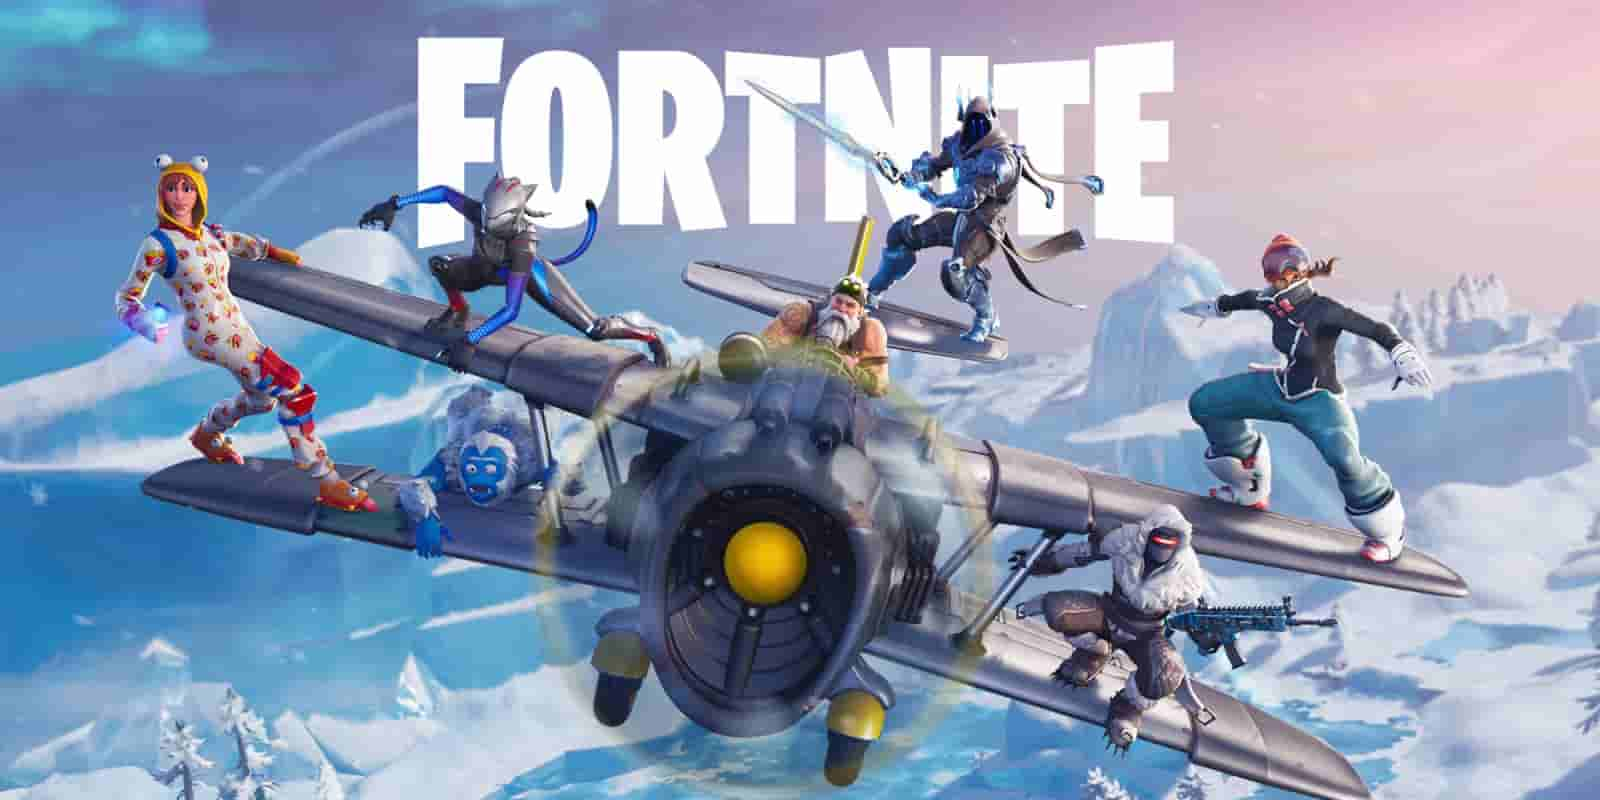 - Fortnite - Teens Are Making Thousand Of Pounds By Hacking Fortnite Accounts